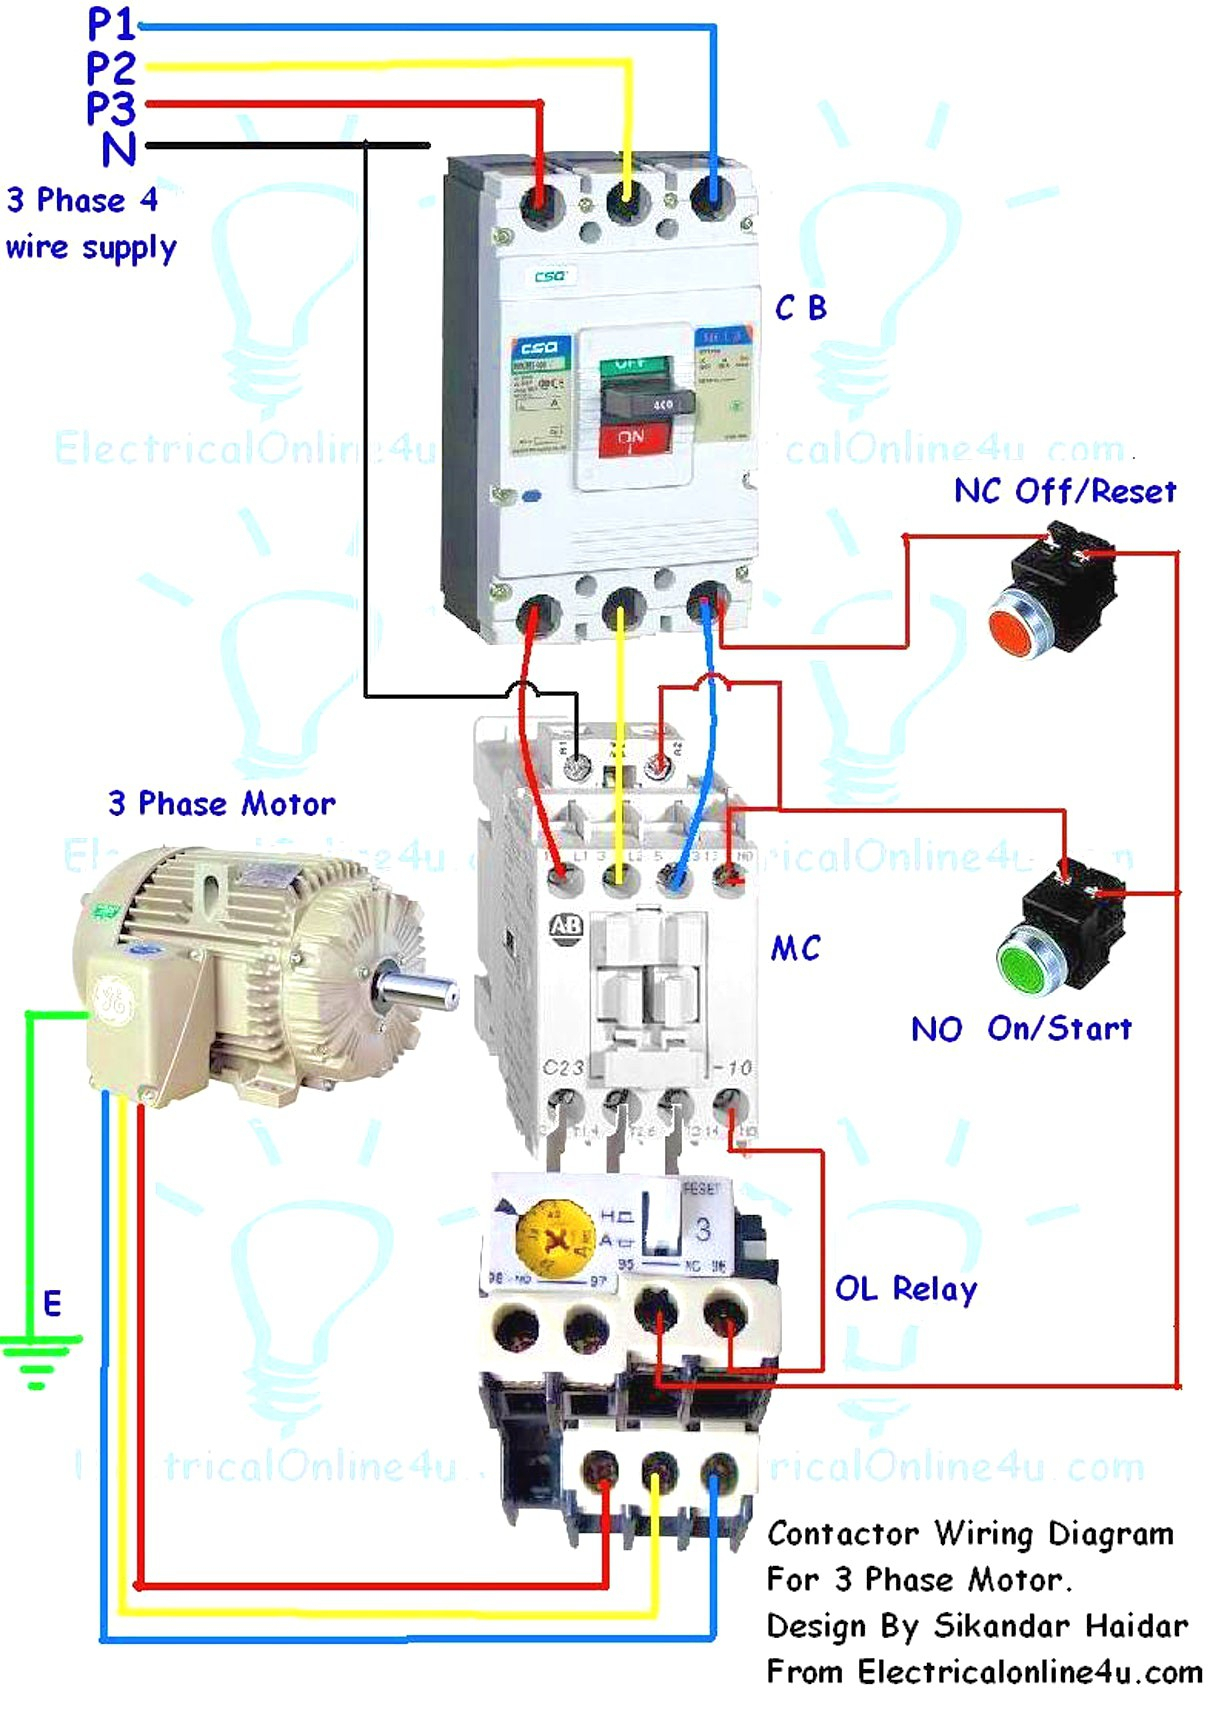 get 3 phase contactor wiring diagram start stop download start stop push button switch wiring diagram 3 phase motor start stop wiring diagram